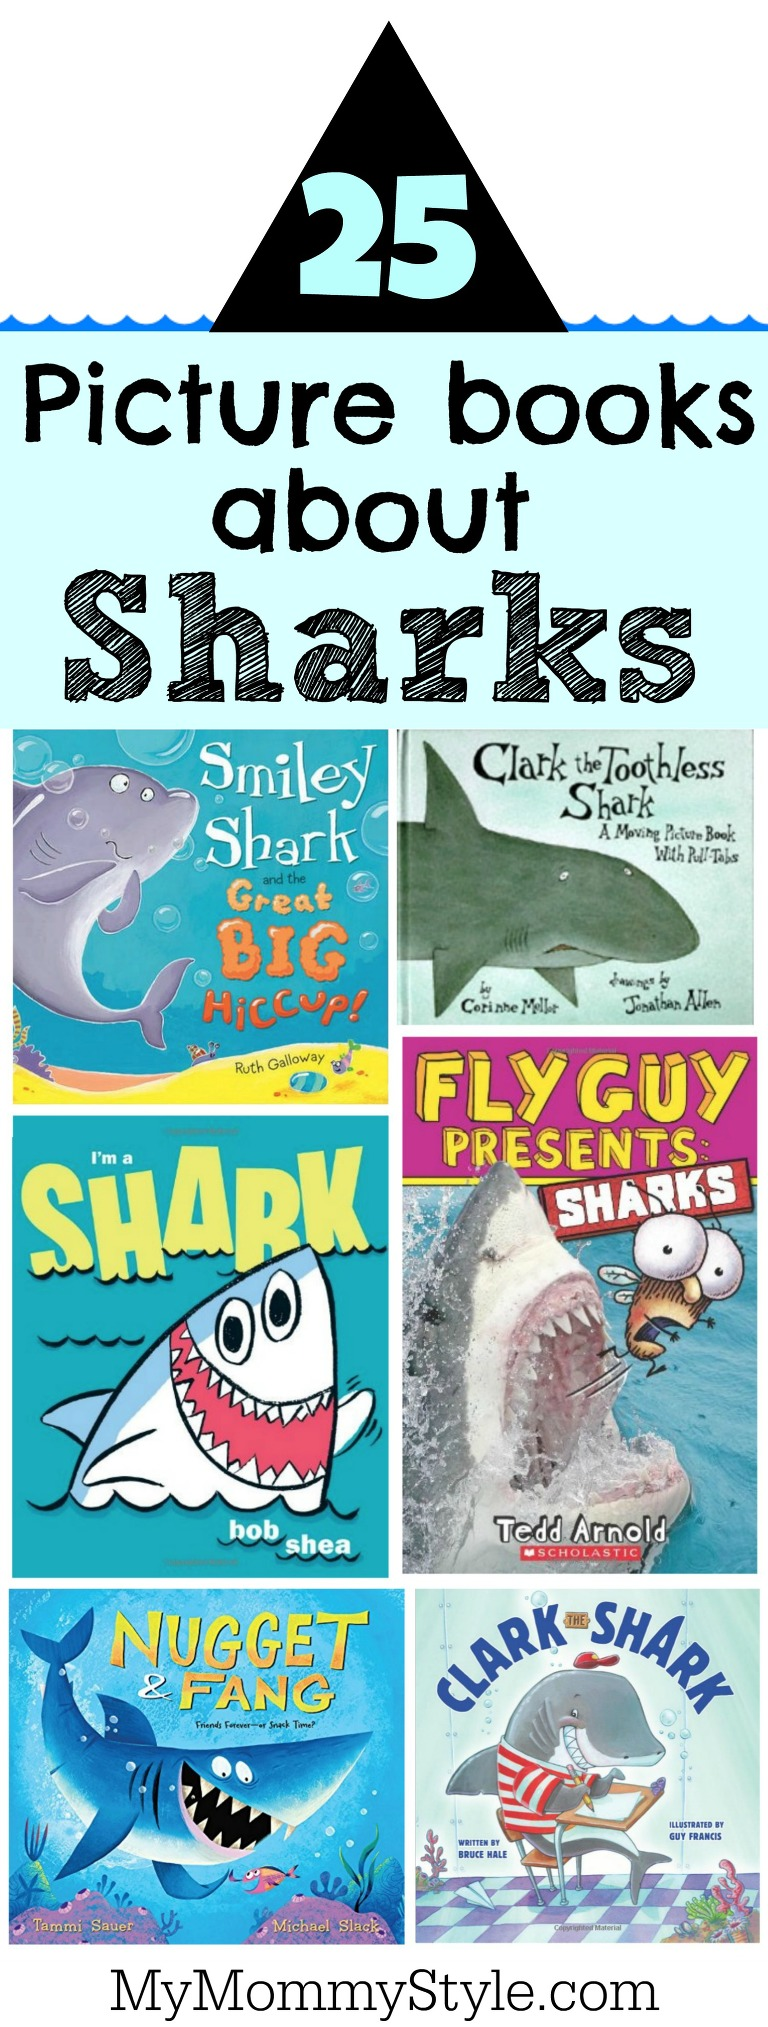 25 picture books about sharks collage.